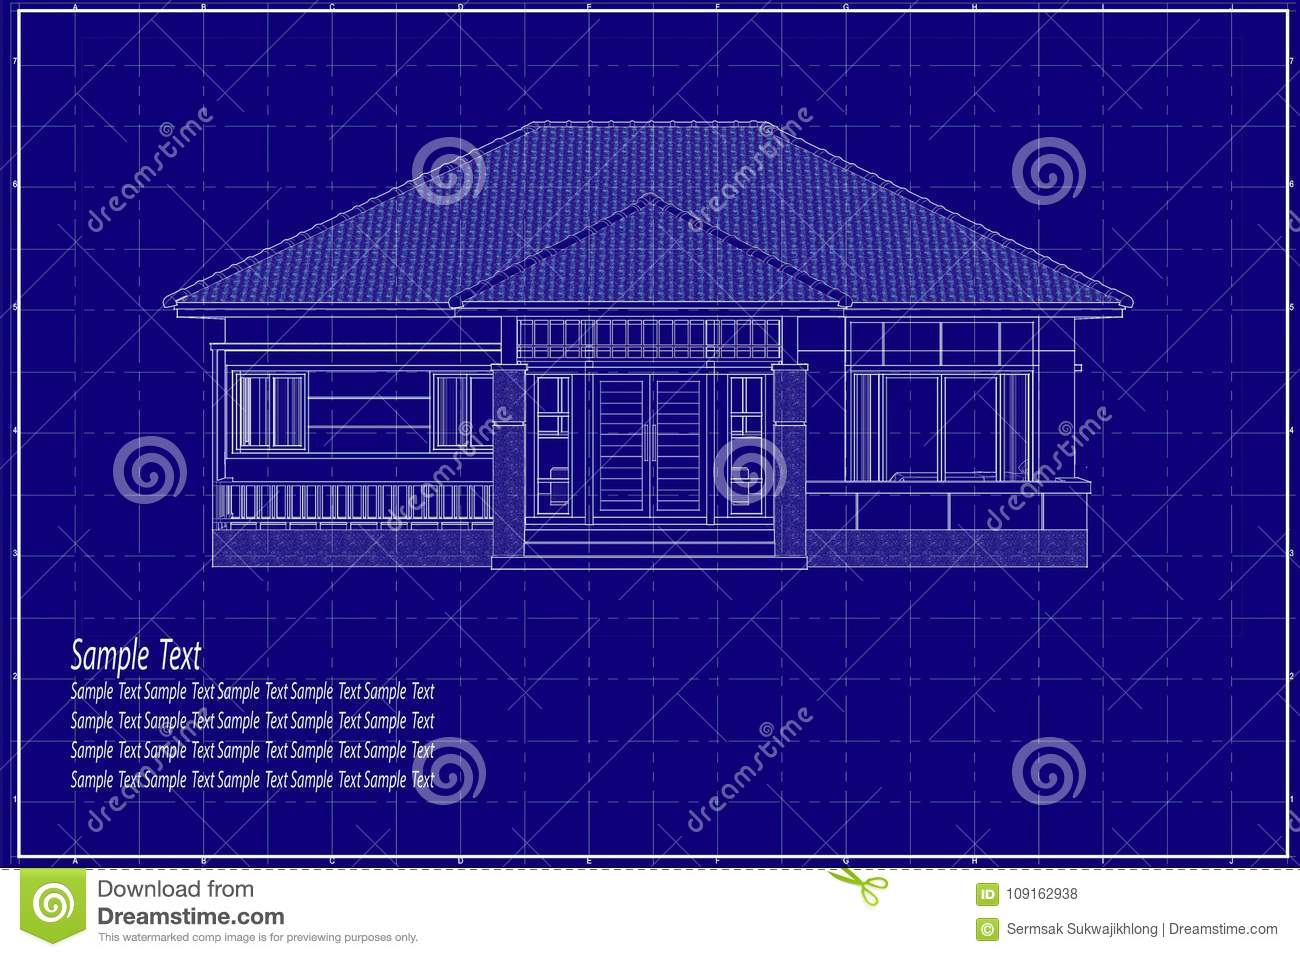 3d building on blueprint stock photo image of factory 109162938 download 3d building on blueprint stock photo image of factory 109162938 malvernweather Image collections